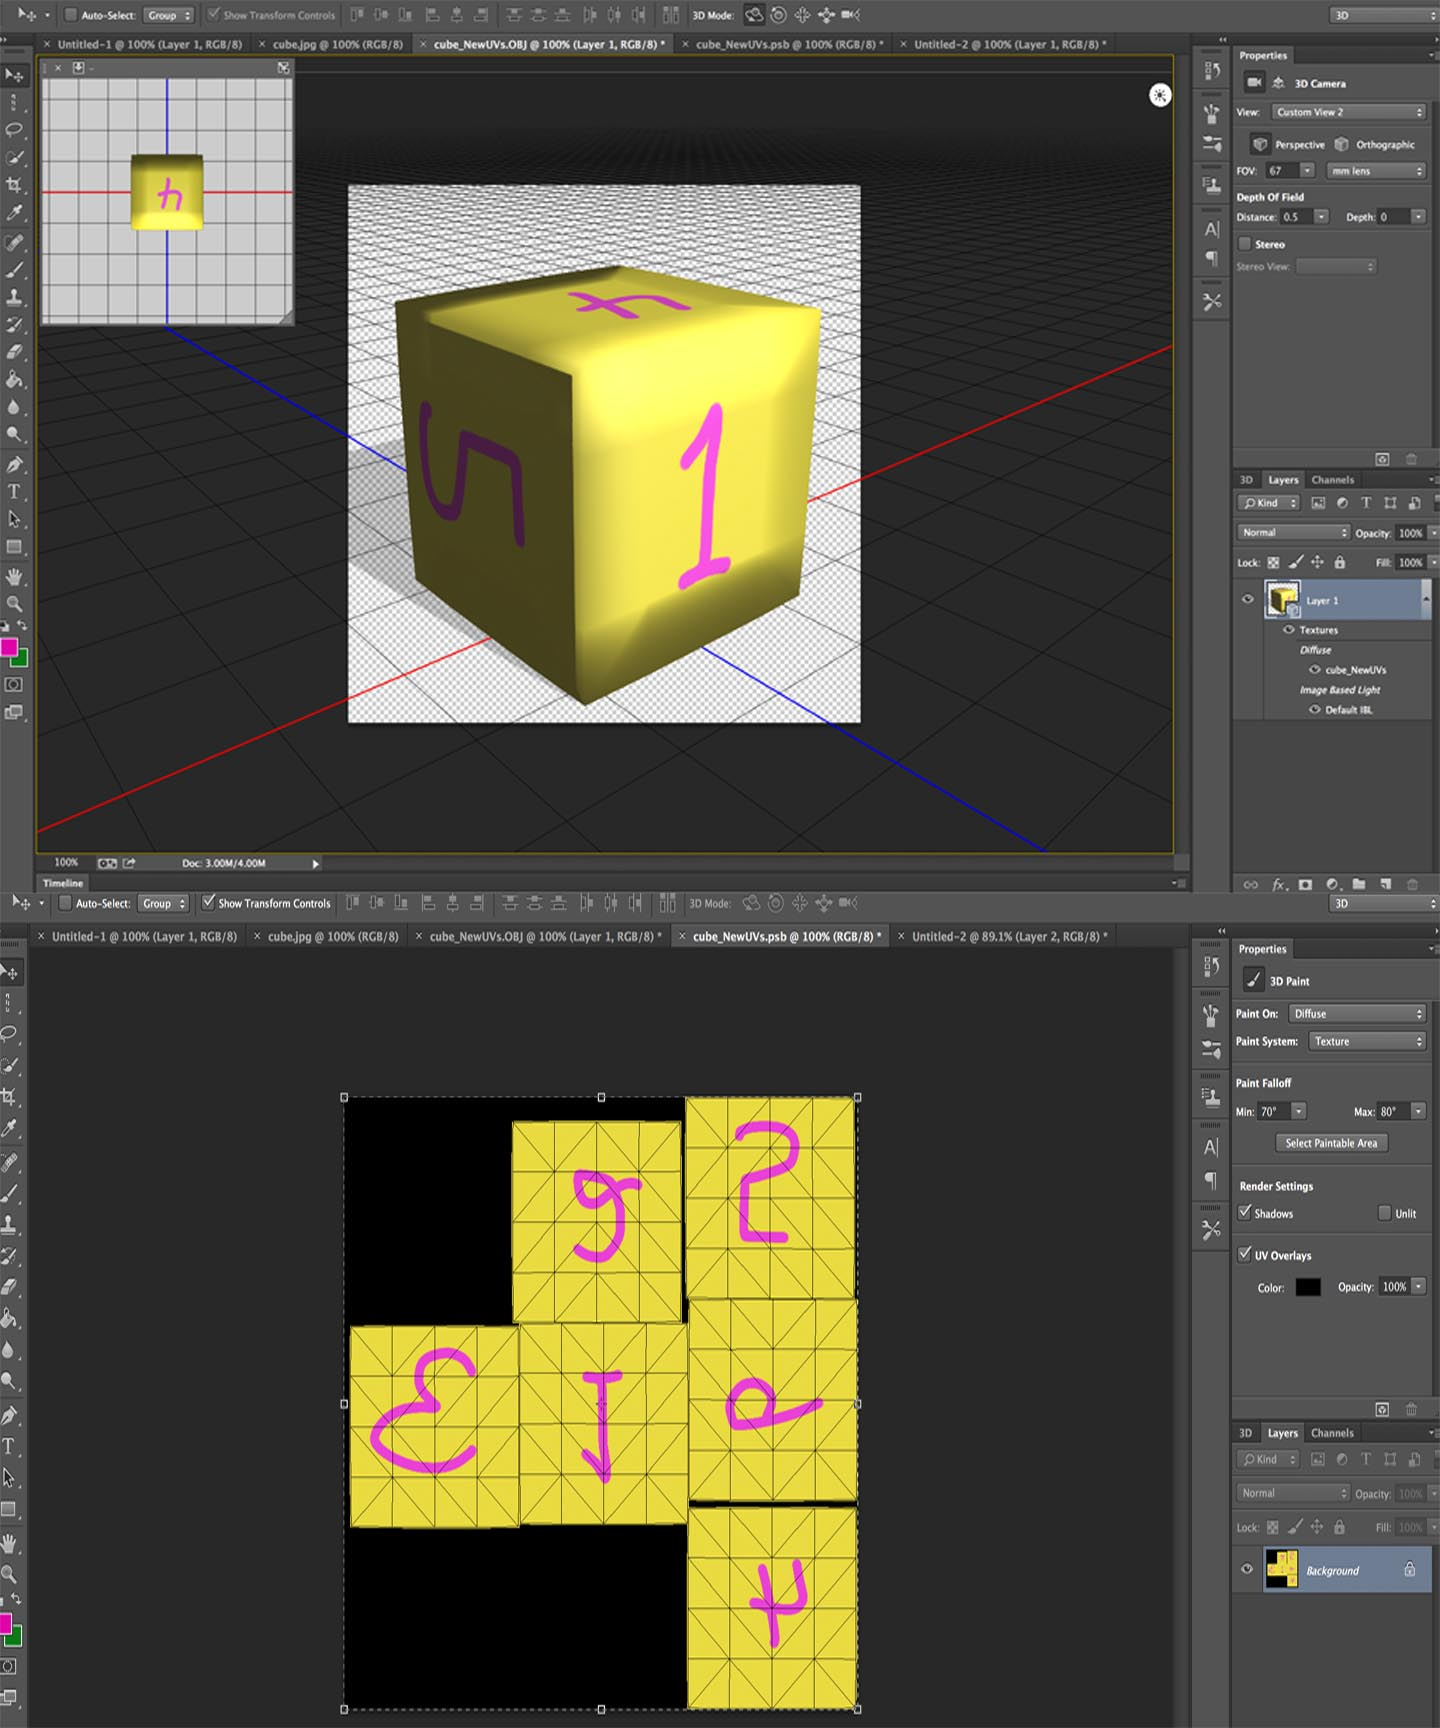 Editing DAE & OBJ with Photoshop? - Mesh - Second Life Community